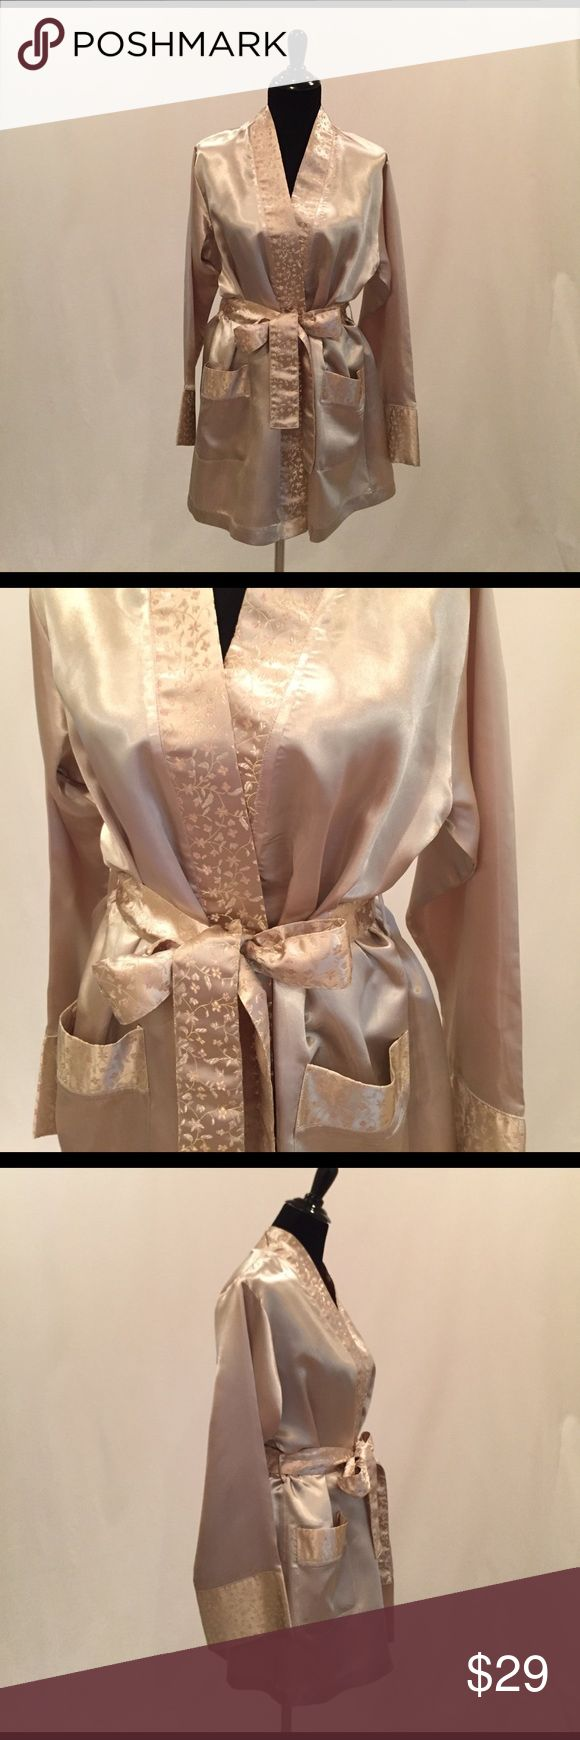 """Sarah Spencer Intimates Shiny Short Robe Shiny cream/light gold robe with light pink flower print ribbon-like accents and belt. Never worn. 30"""" Long. Sarah Spencer  Intimates & Sleepwear Robes"""